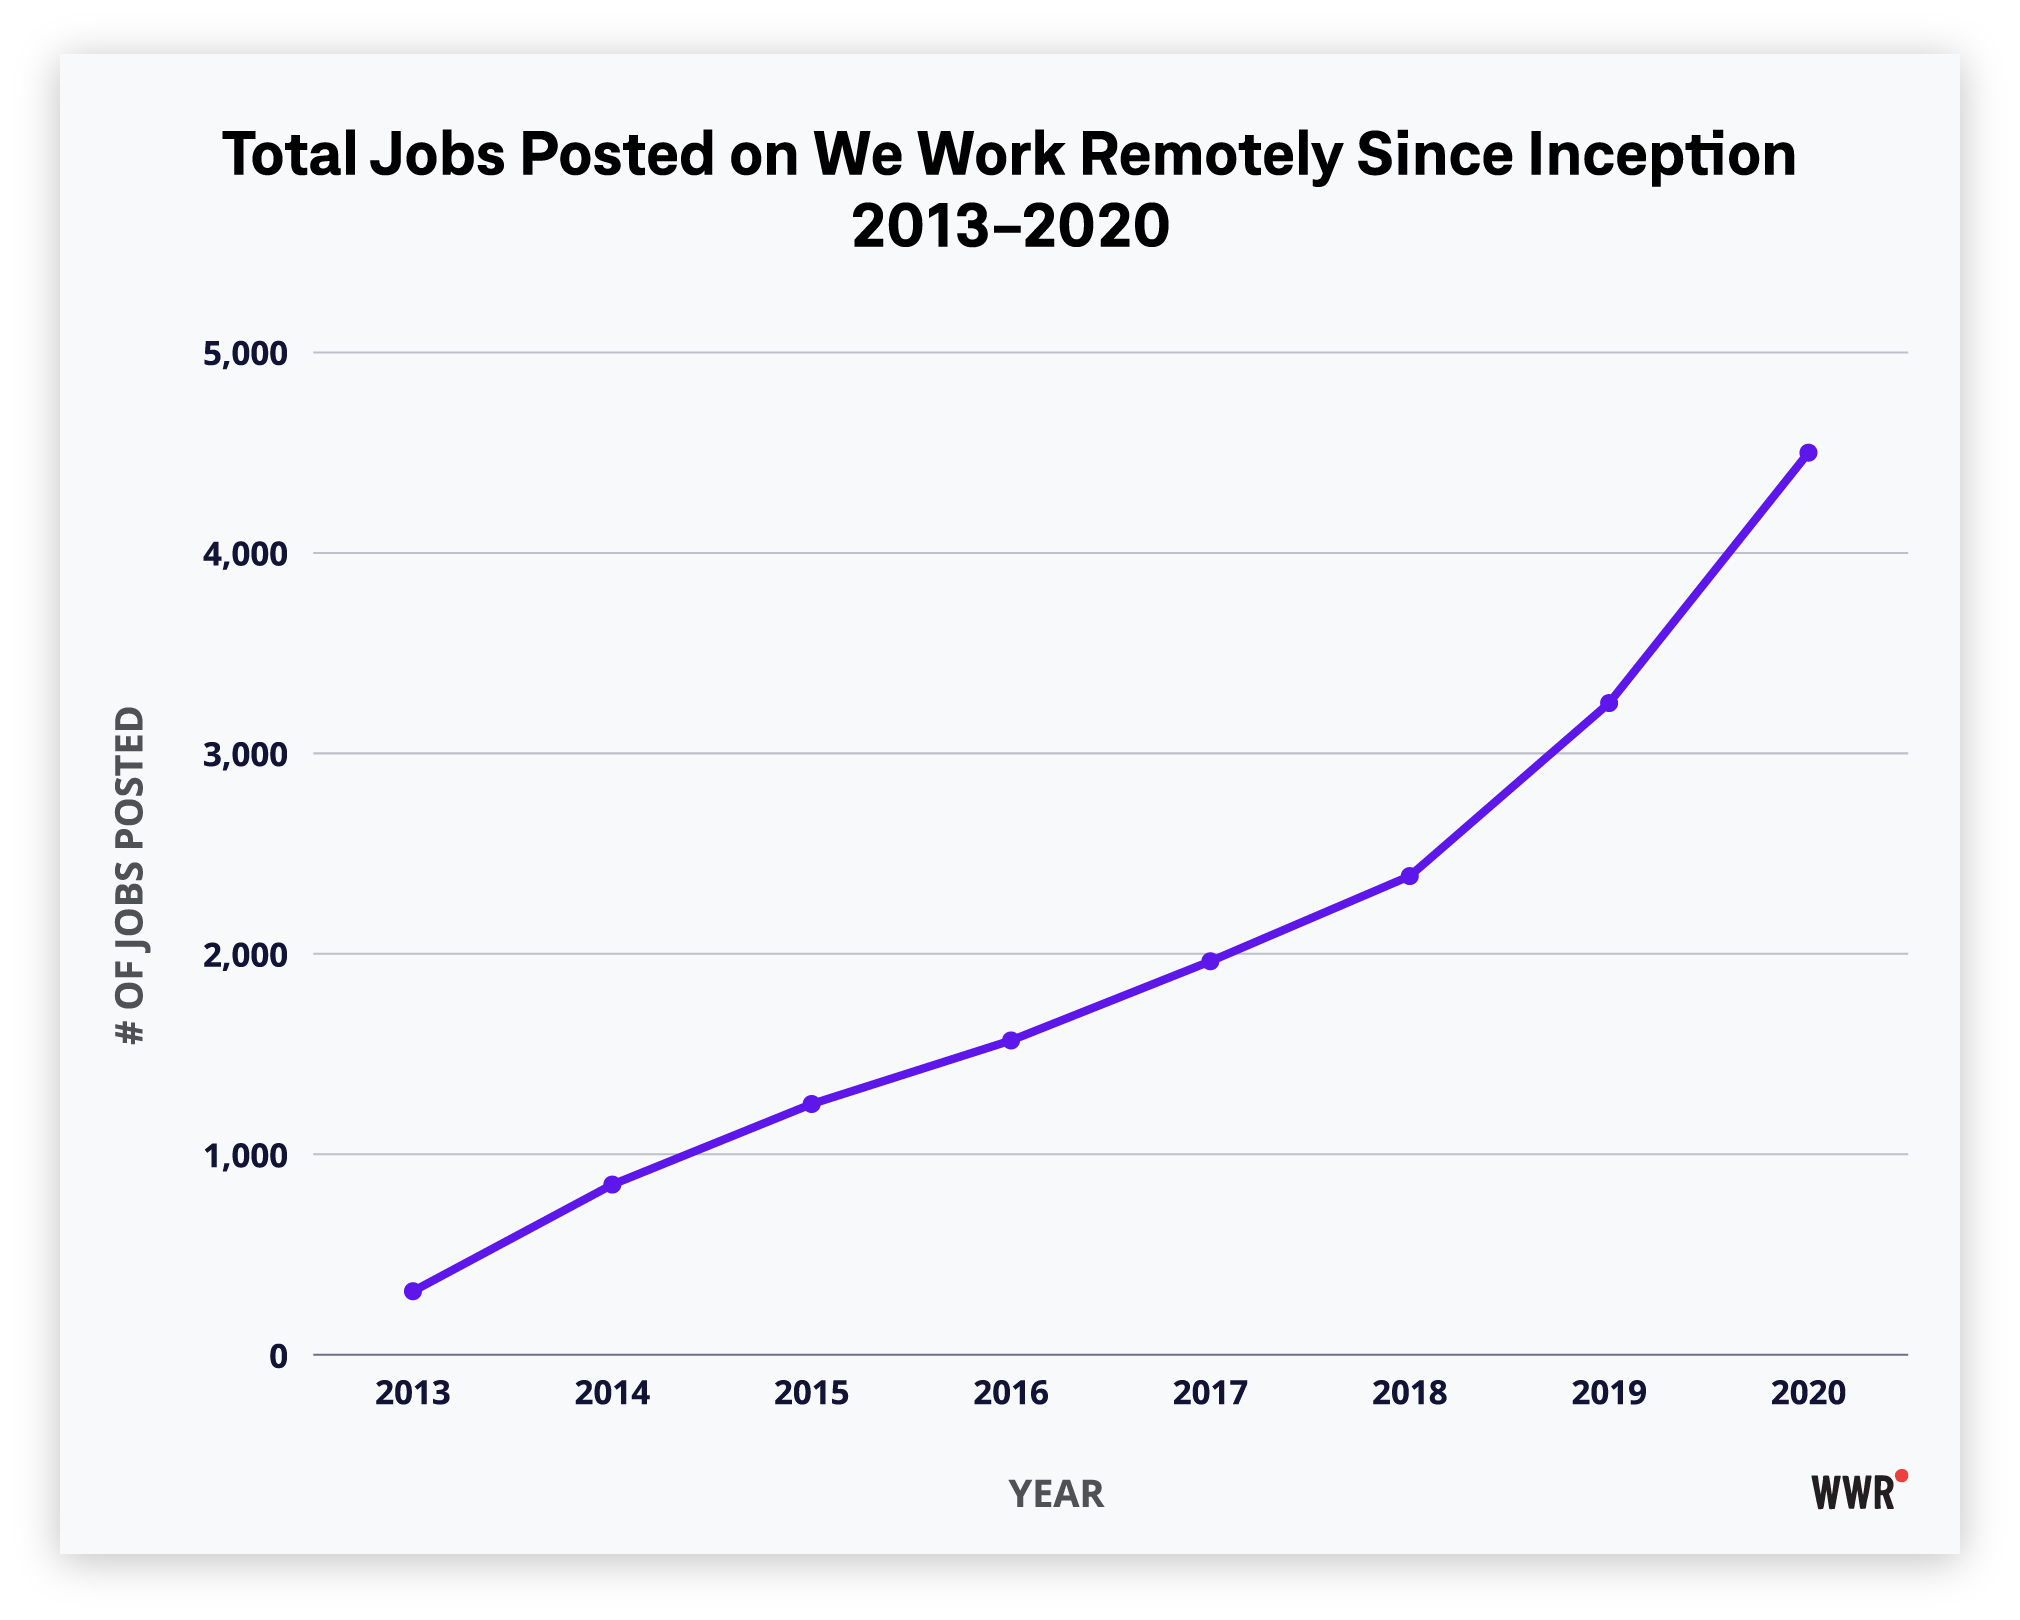 WWR-total-jobs-posted-2013-2020,